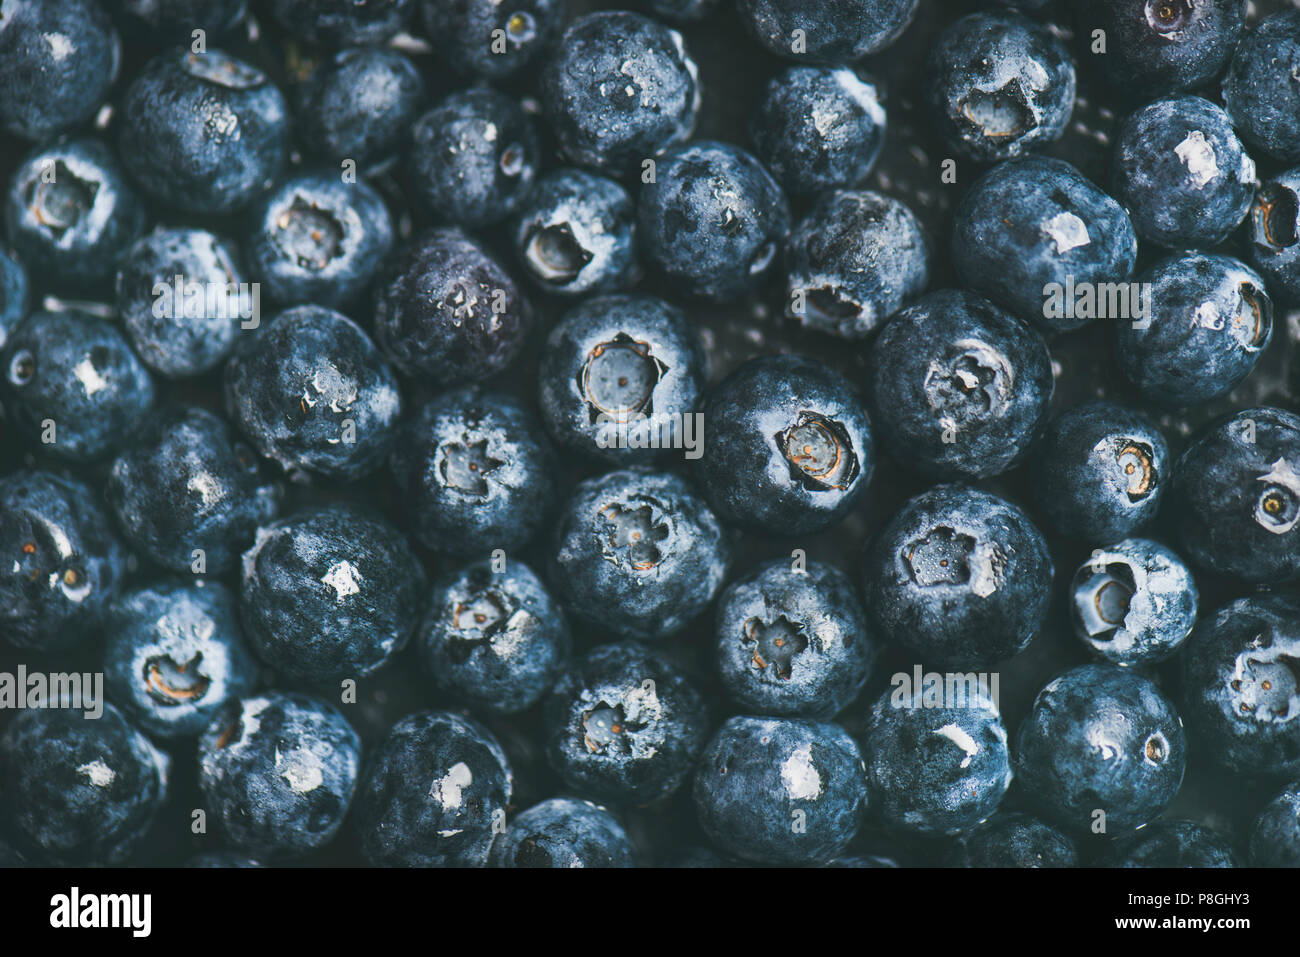 Fresh blueberry texture, wallpaper and background. Flat-lay of wet dark forest blueberries, top view. Summer food or local market produce concept - Stock Image